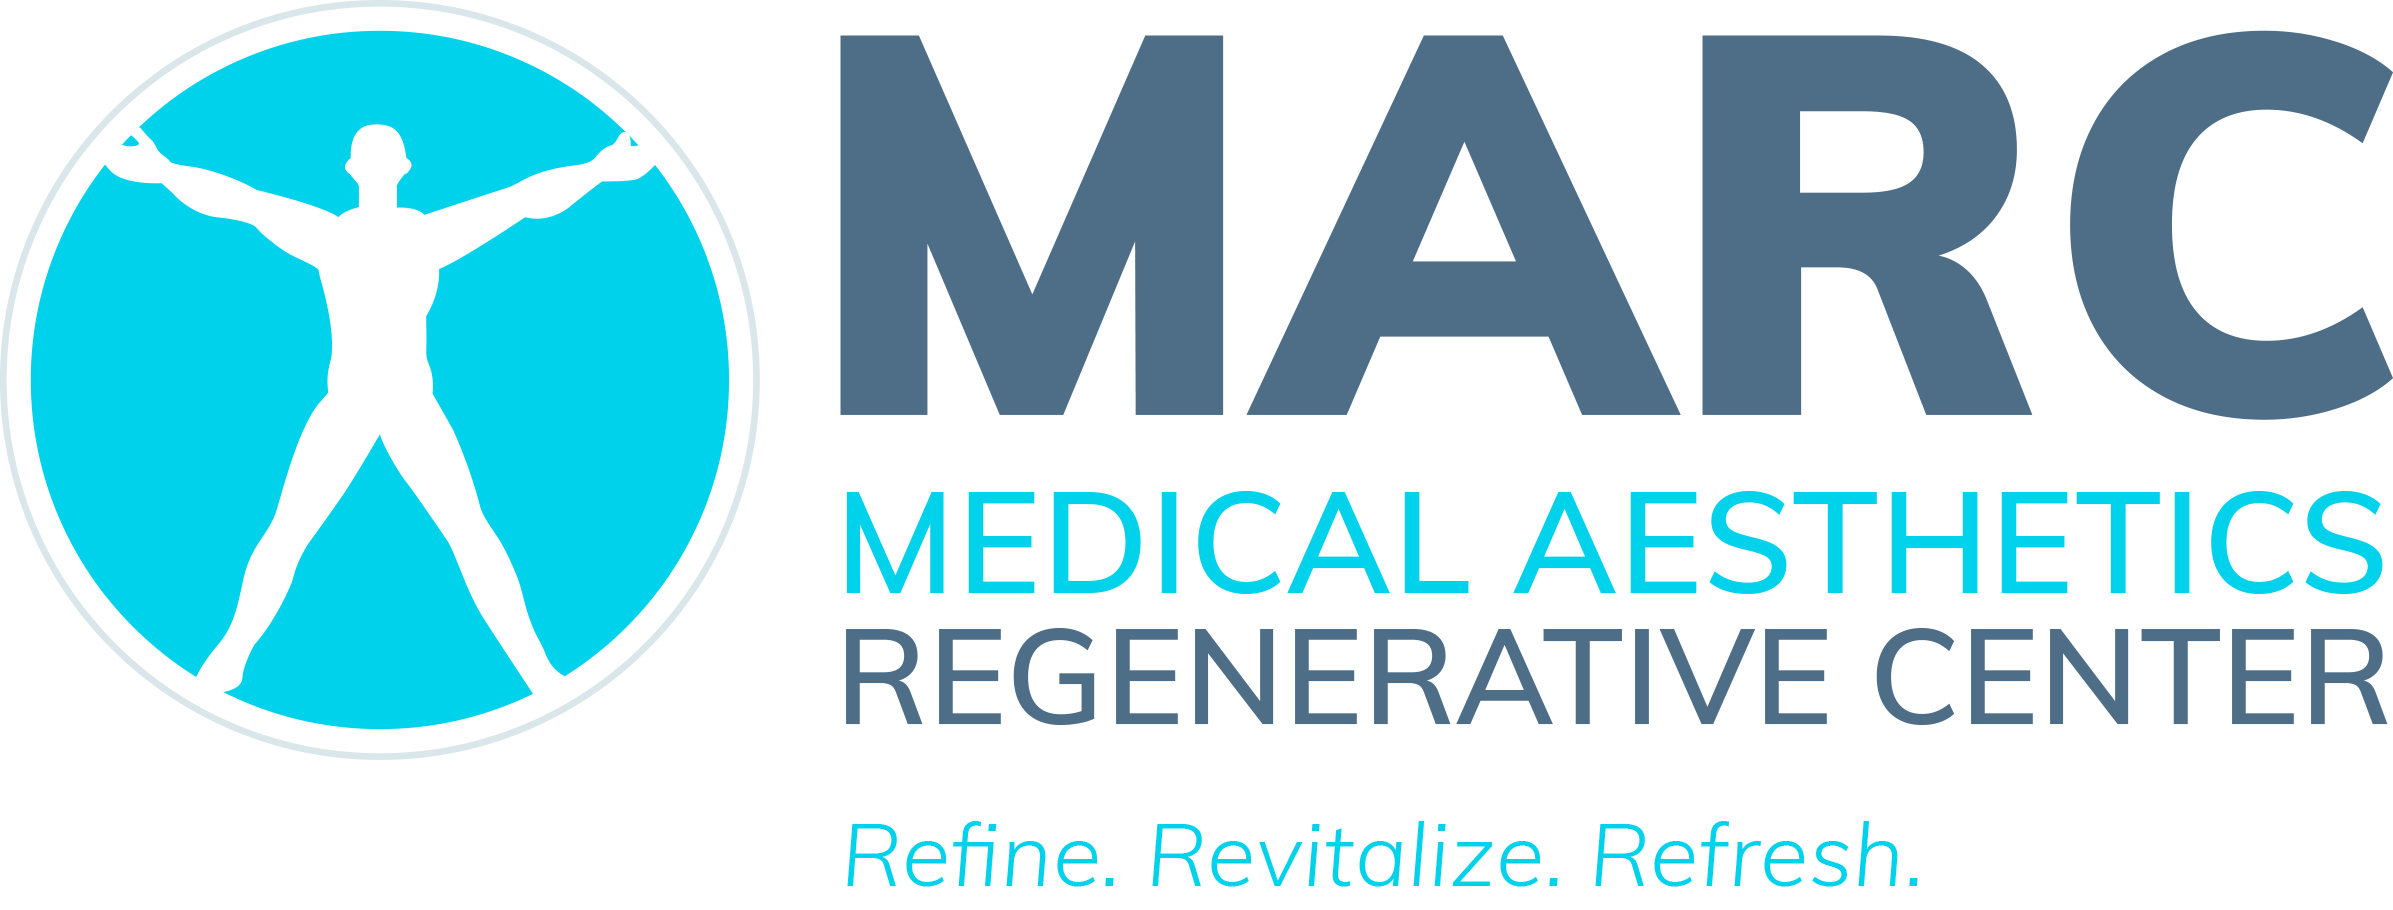 MEDICAL AESTHETICS REGENERATIVE CENTER IN GASTONIA, NC